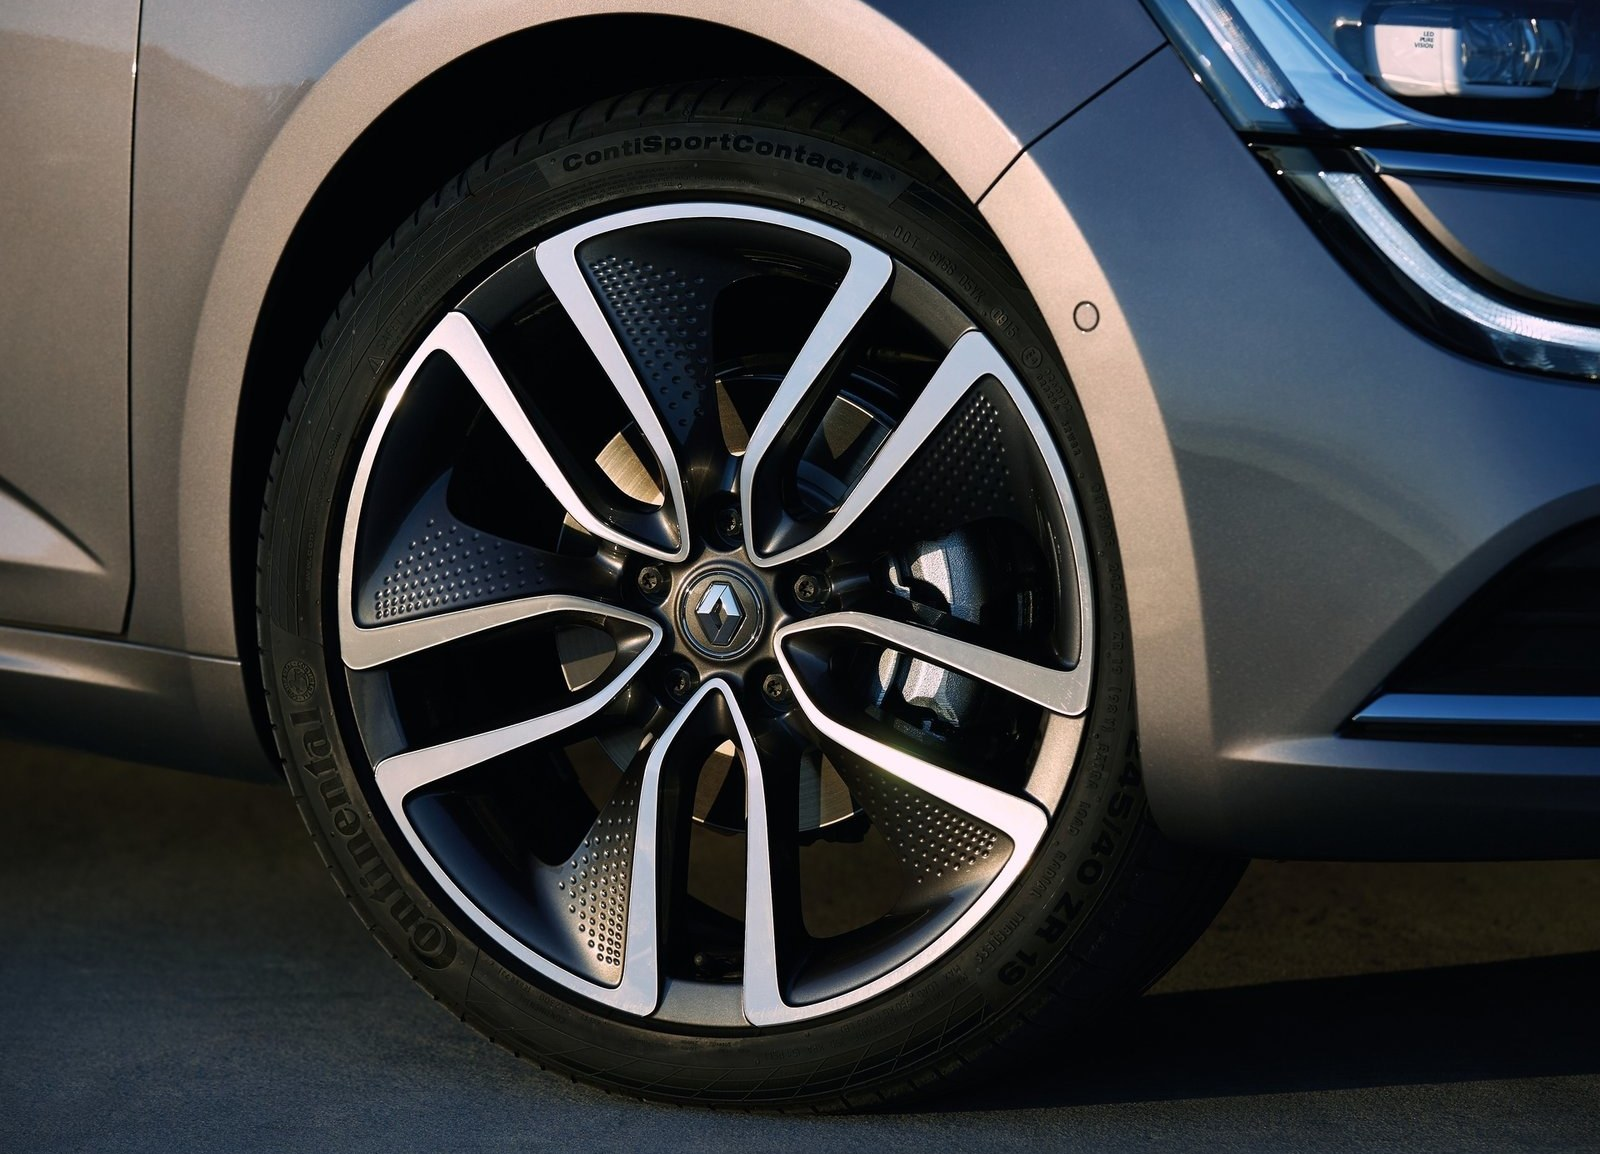 2016 Renault Talisman Velg And Wheel (View 5 of 14)